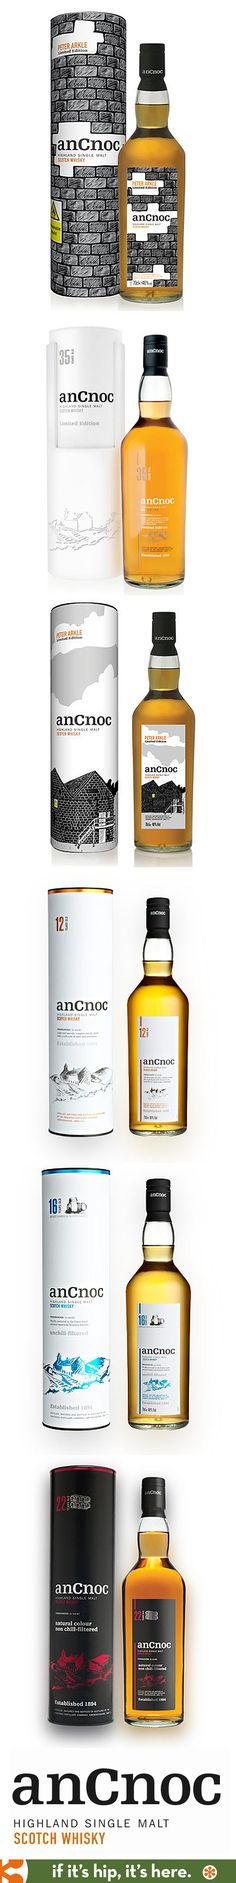 anCnoc Whisky bottles and packaging.